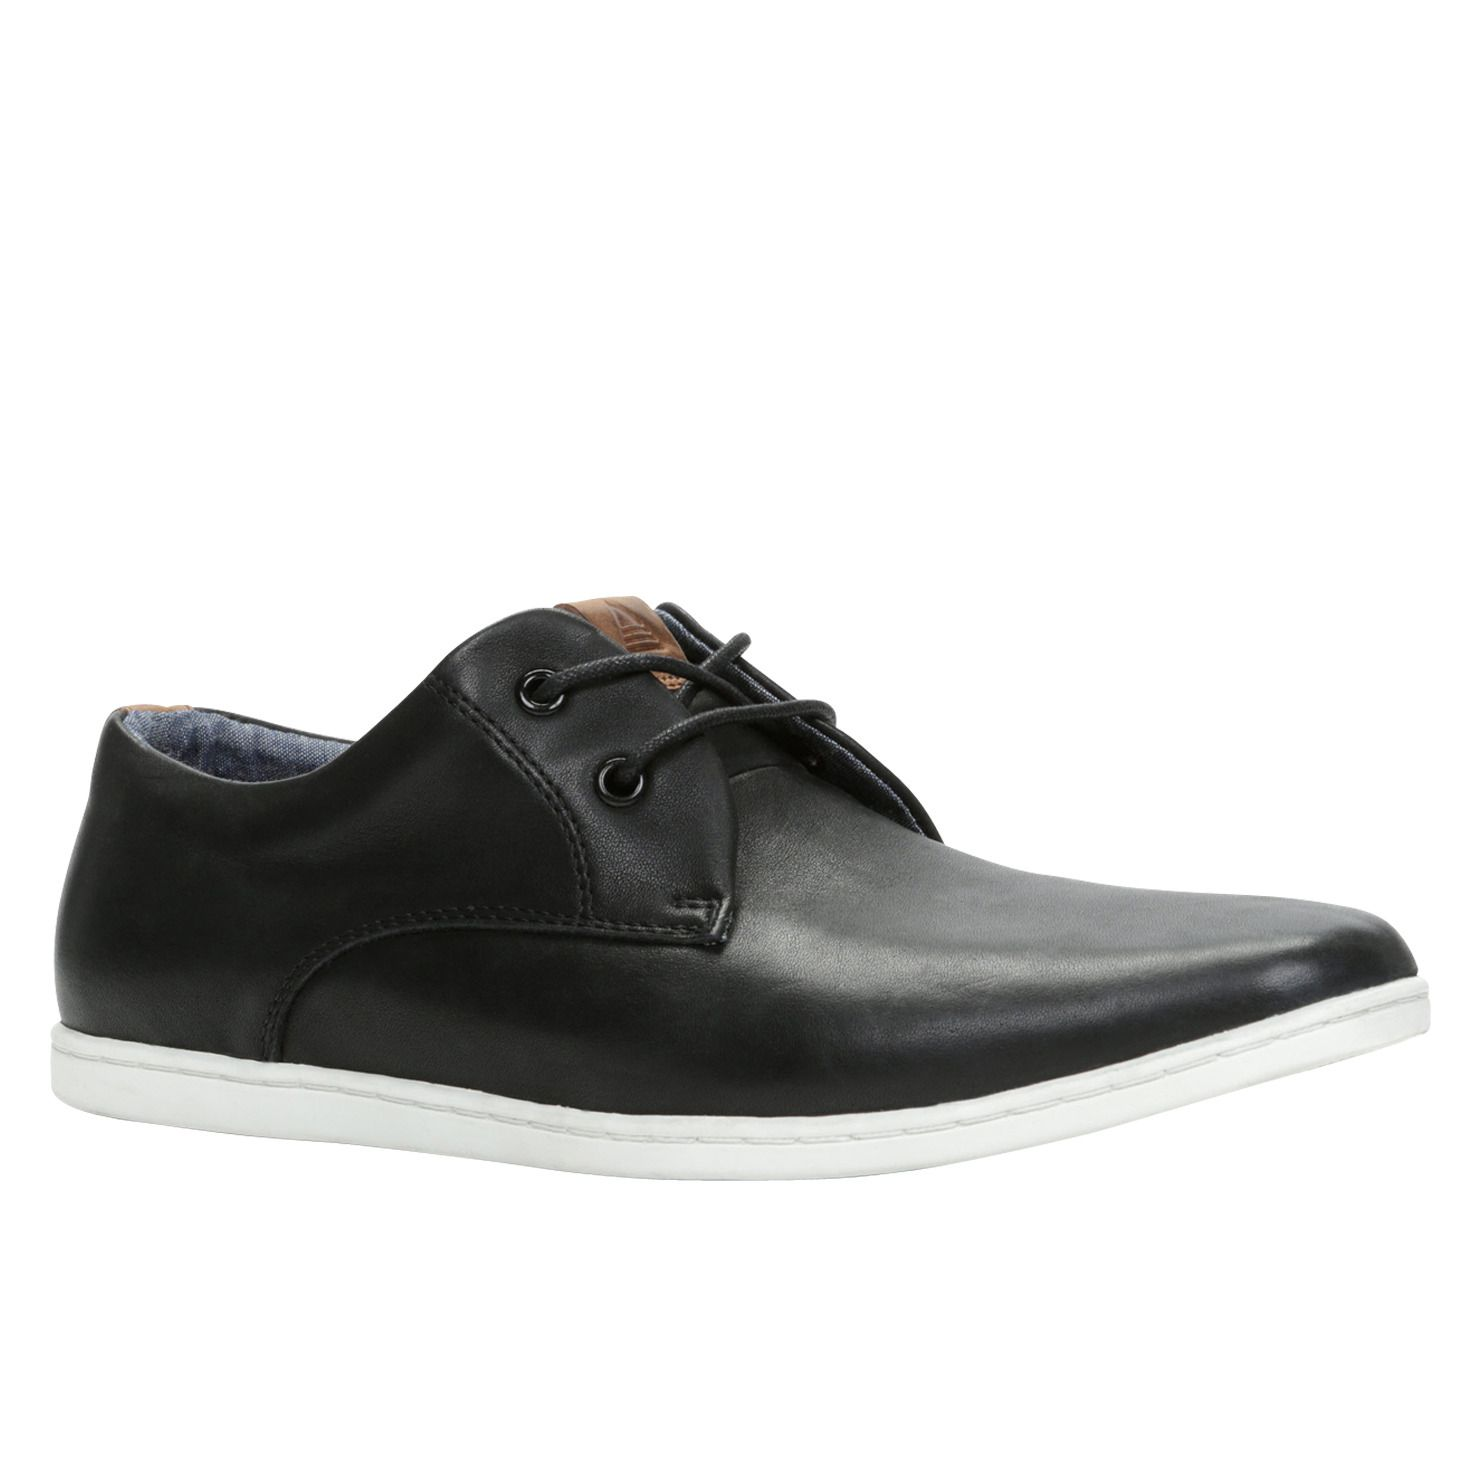 MURRILLO - men's casual lace-ups shoes for sale at ALDO Shoes.